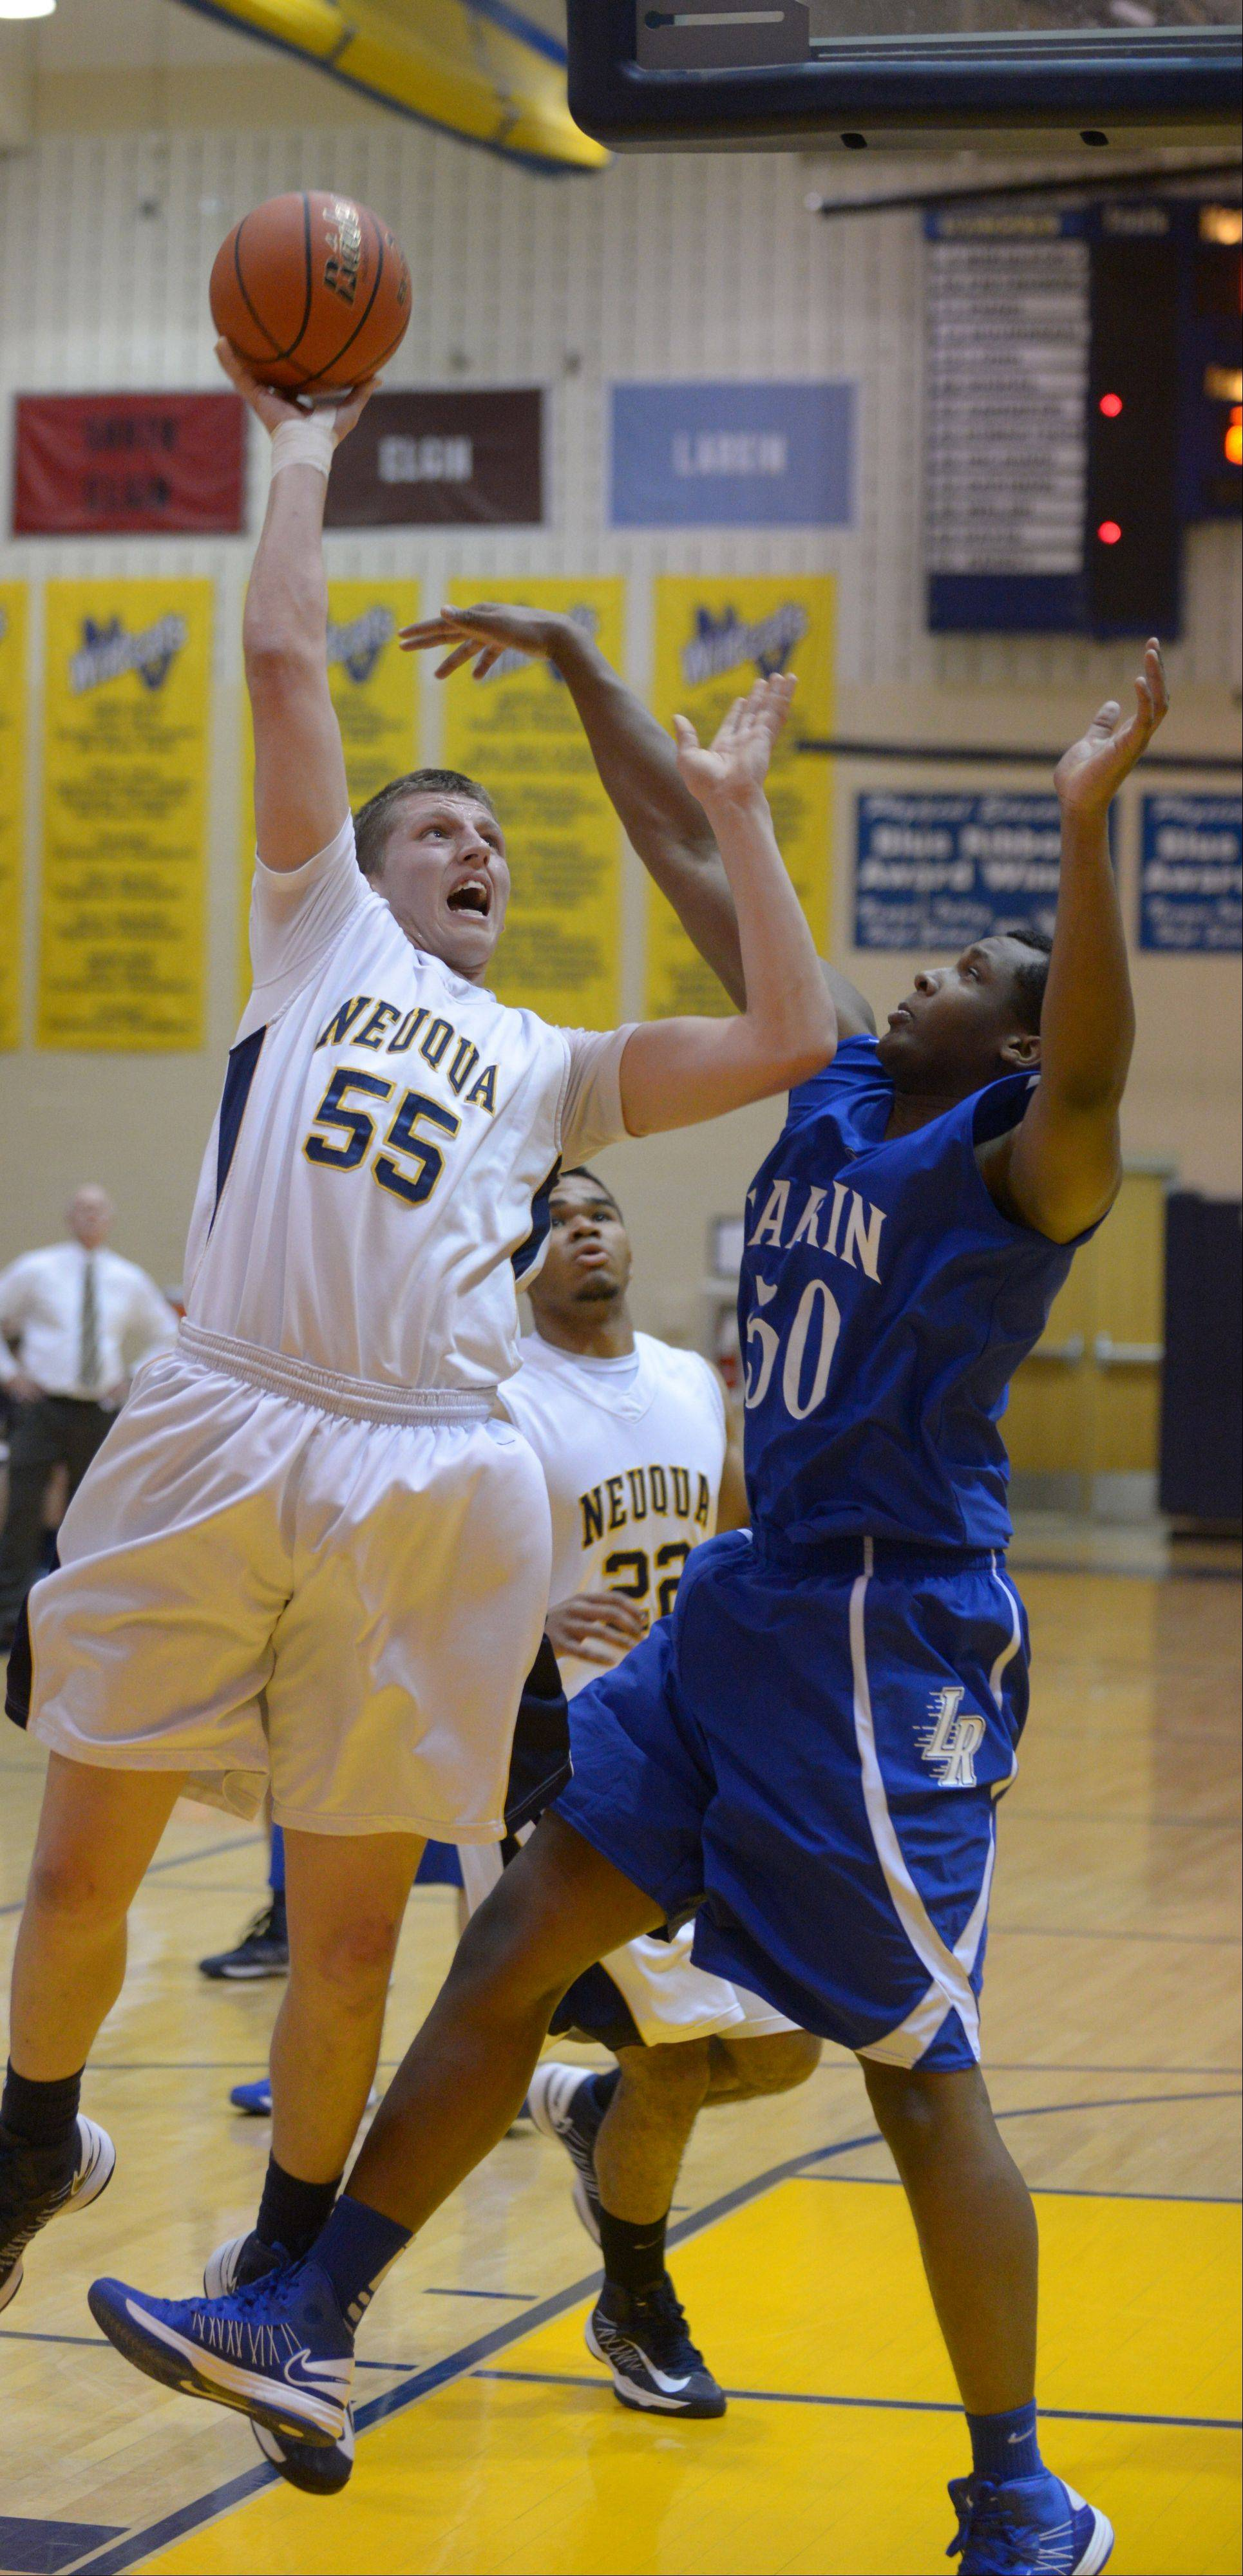 Neuqua Valley's Pat Kenny, left, takes a shot over Larkin's Daniel McFadden during Friday's game in Naperville.